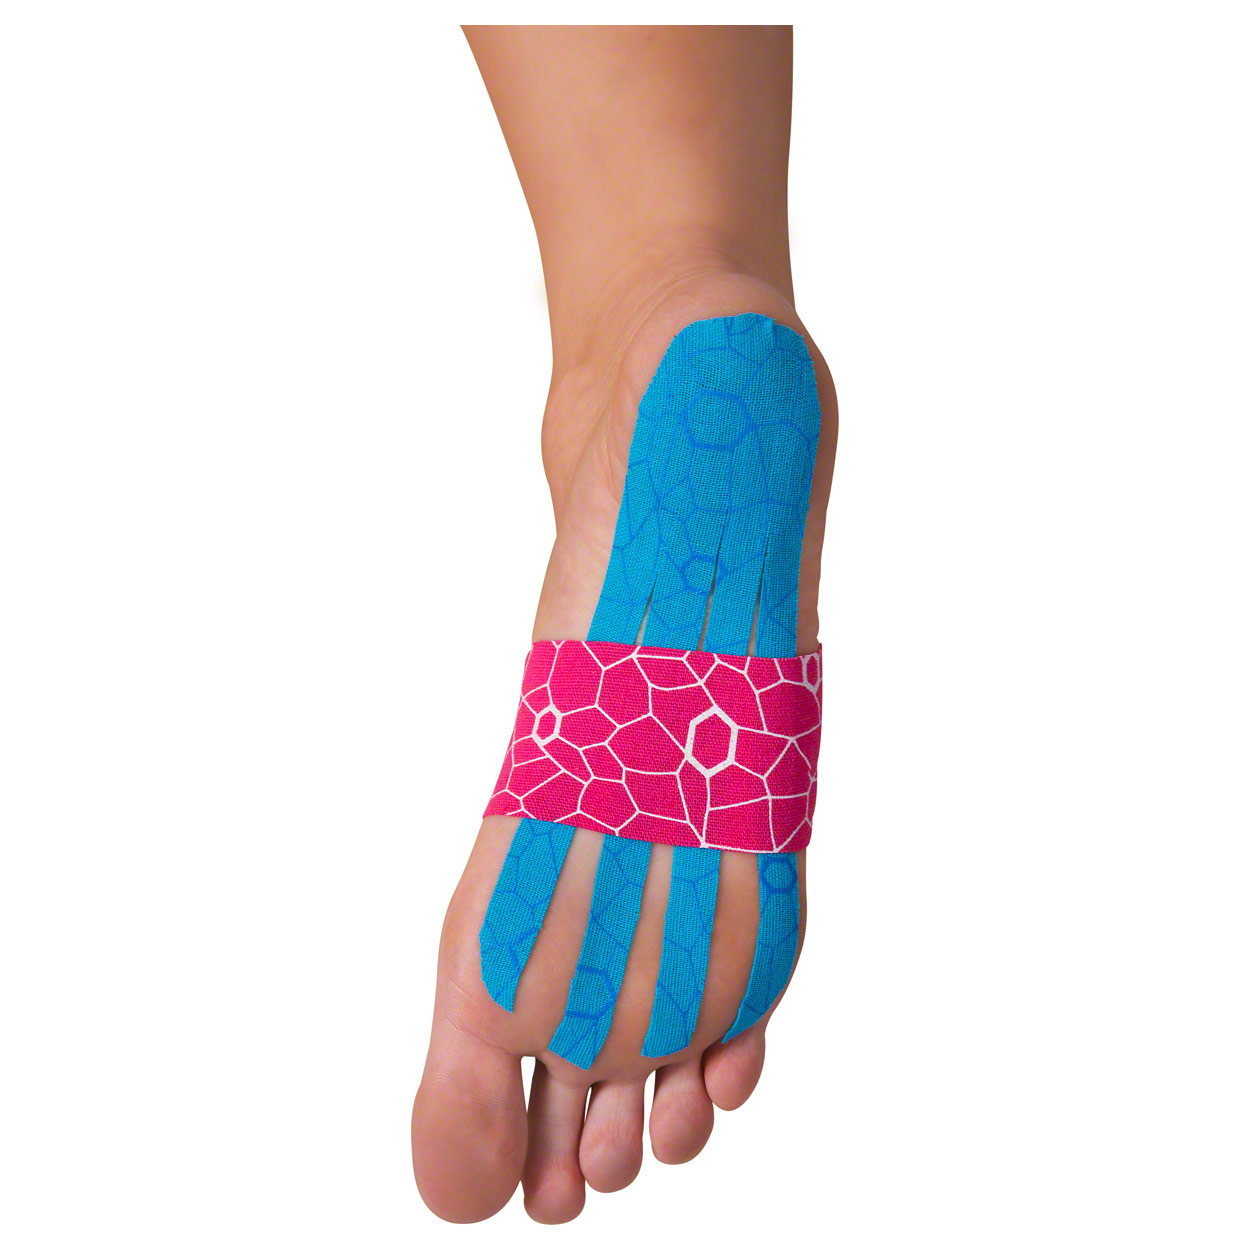 Kunden PH 2016: Thera-Band Kinesiology Tape XactStretch, 5 m x 5 cm, blau/blau